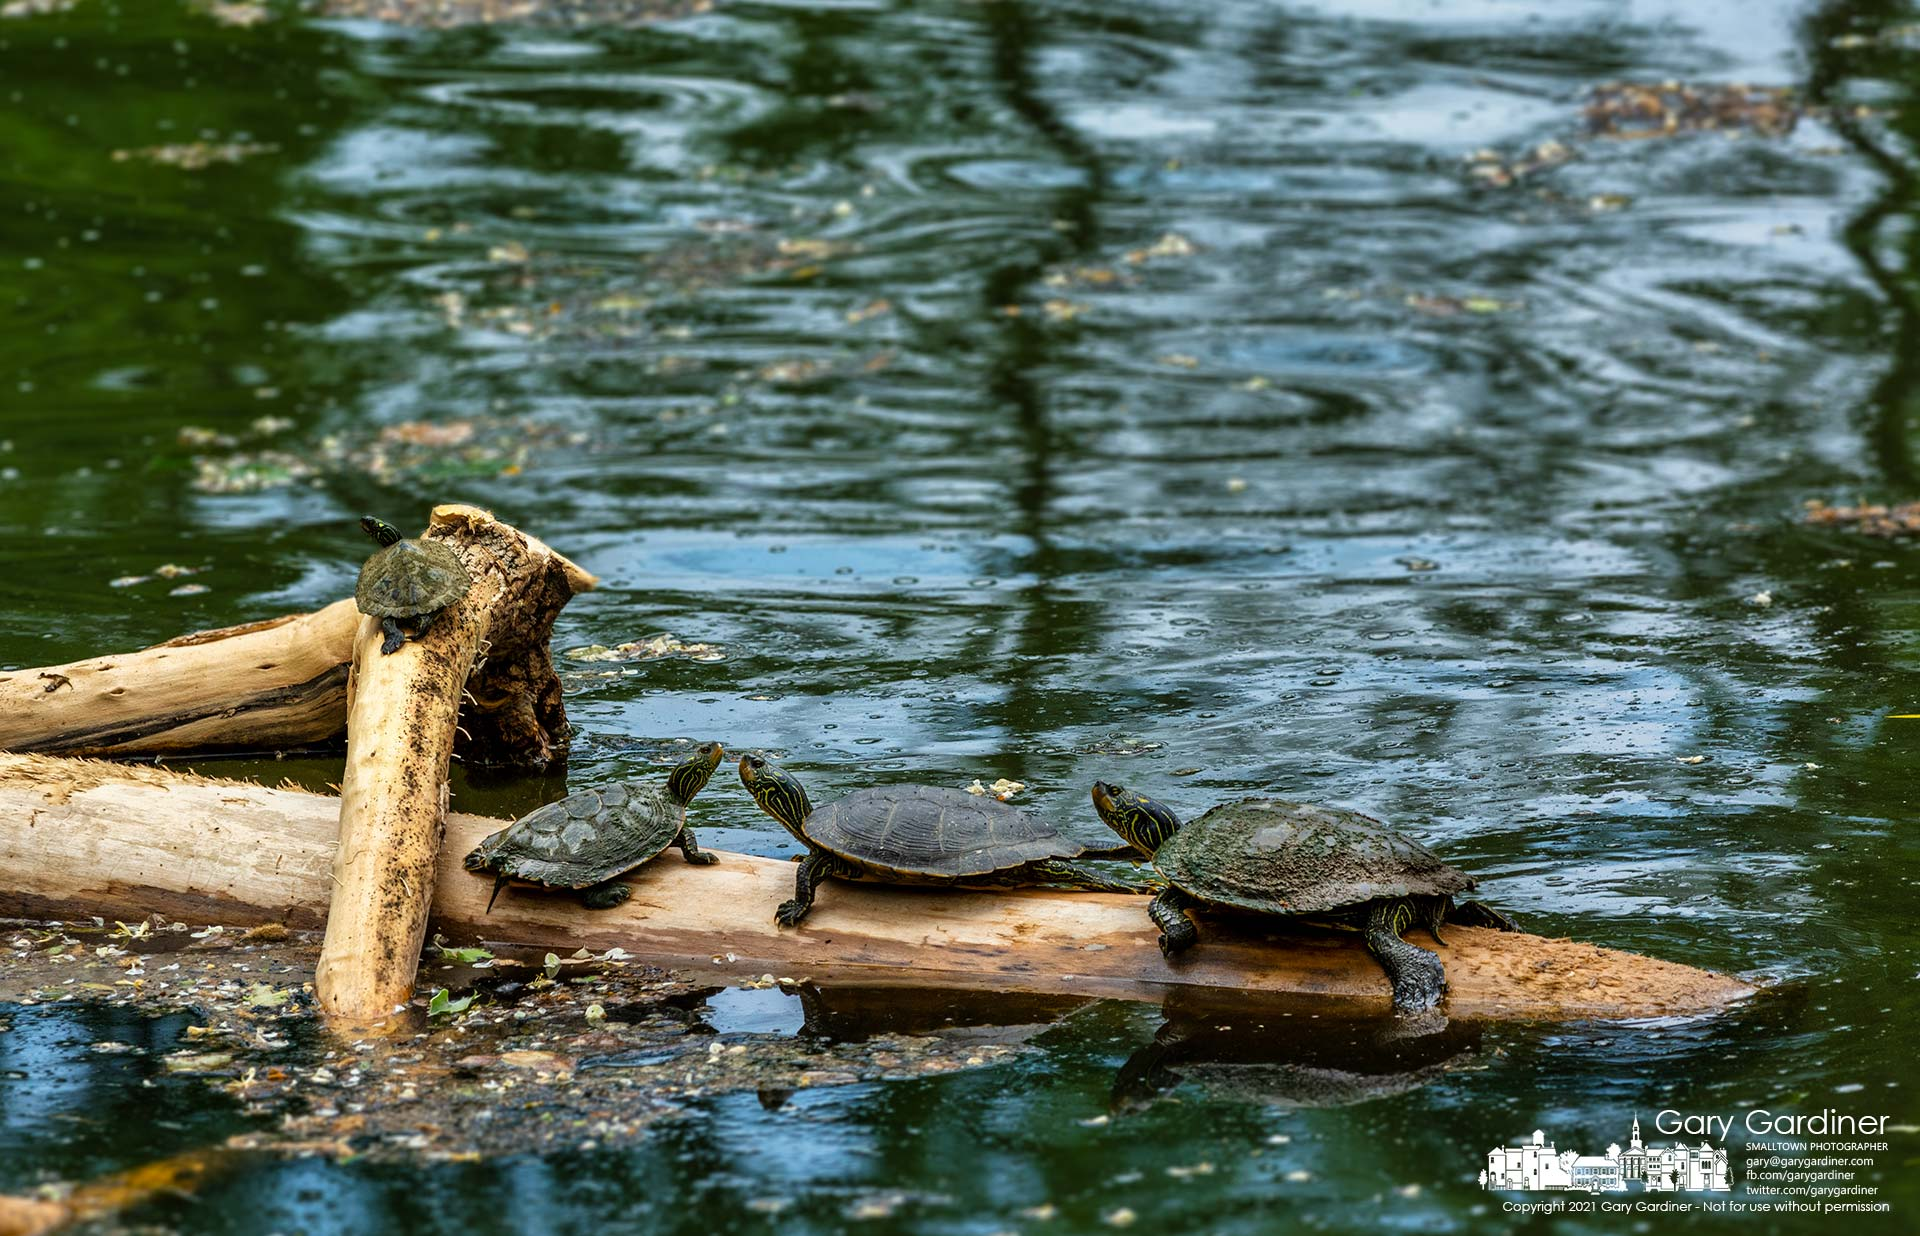 Four painted turtles sun themselves on denuded trees cleared of bark from the rough waters at the Alum Creek Dam in Westerville. My Final Photo for May 24, 2021.